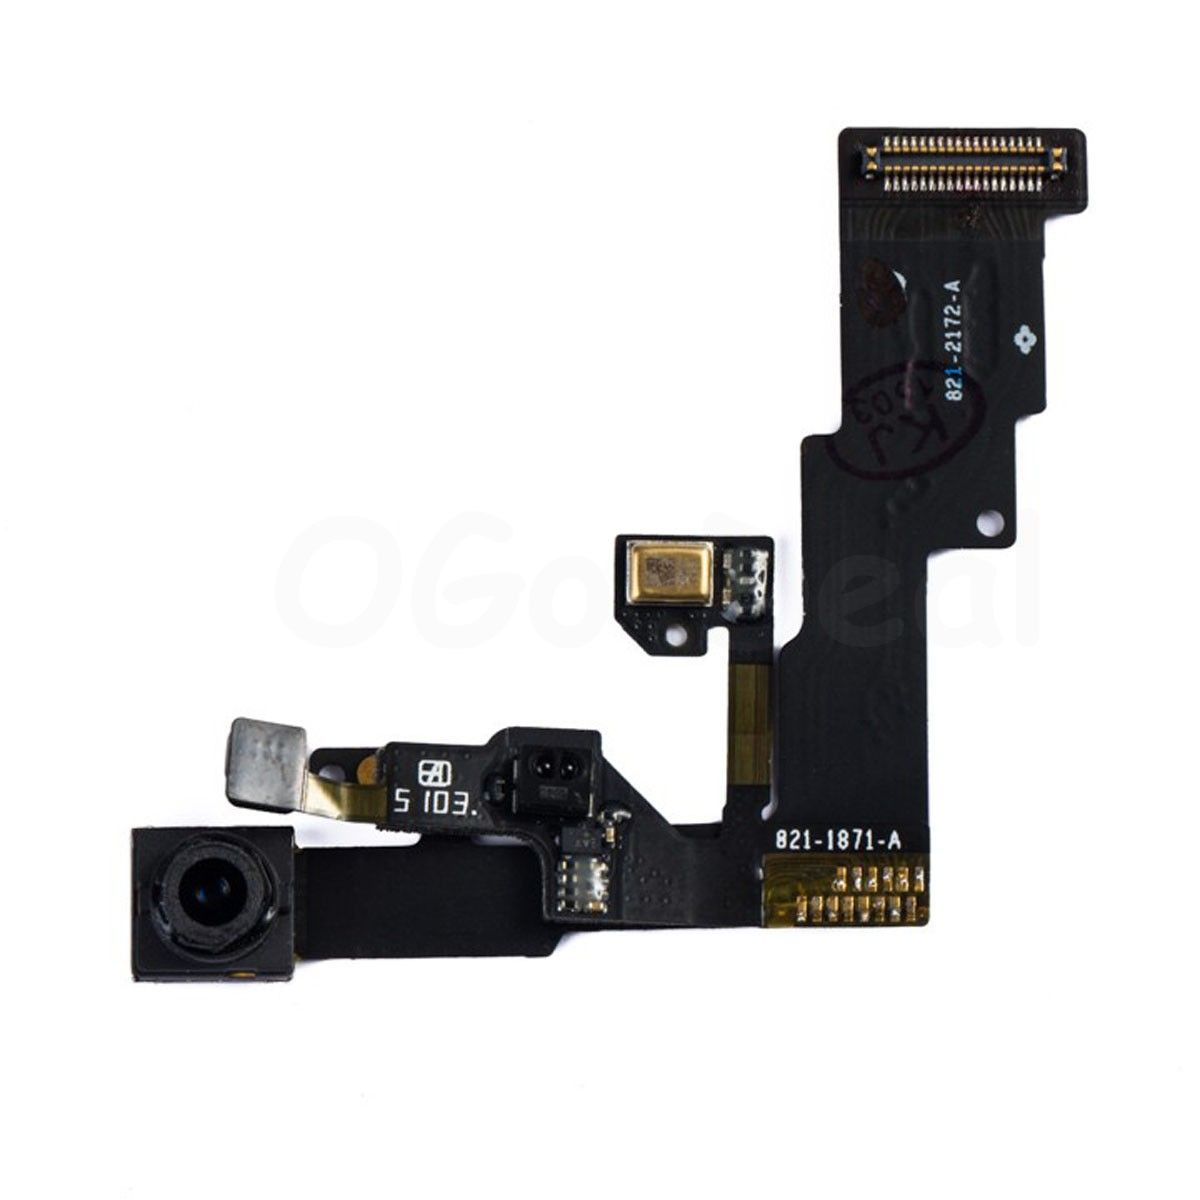 Apple iPhone 6 Front Camera with Sensor Proximity Flex Cable, Ori  Used  #iphone6 #camera @ http://www.ogodeal.com/for-apple-iphone-6-front-camera-with-sensor-proximity-flex-cable-ori-used.html